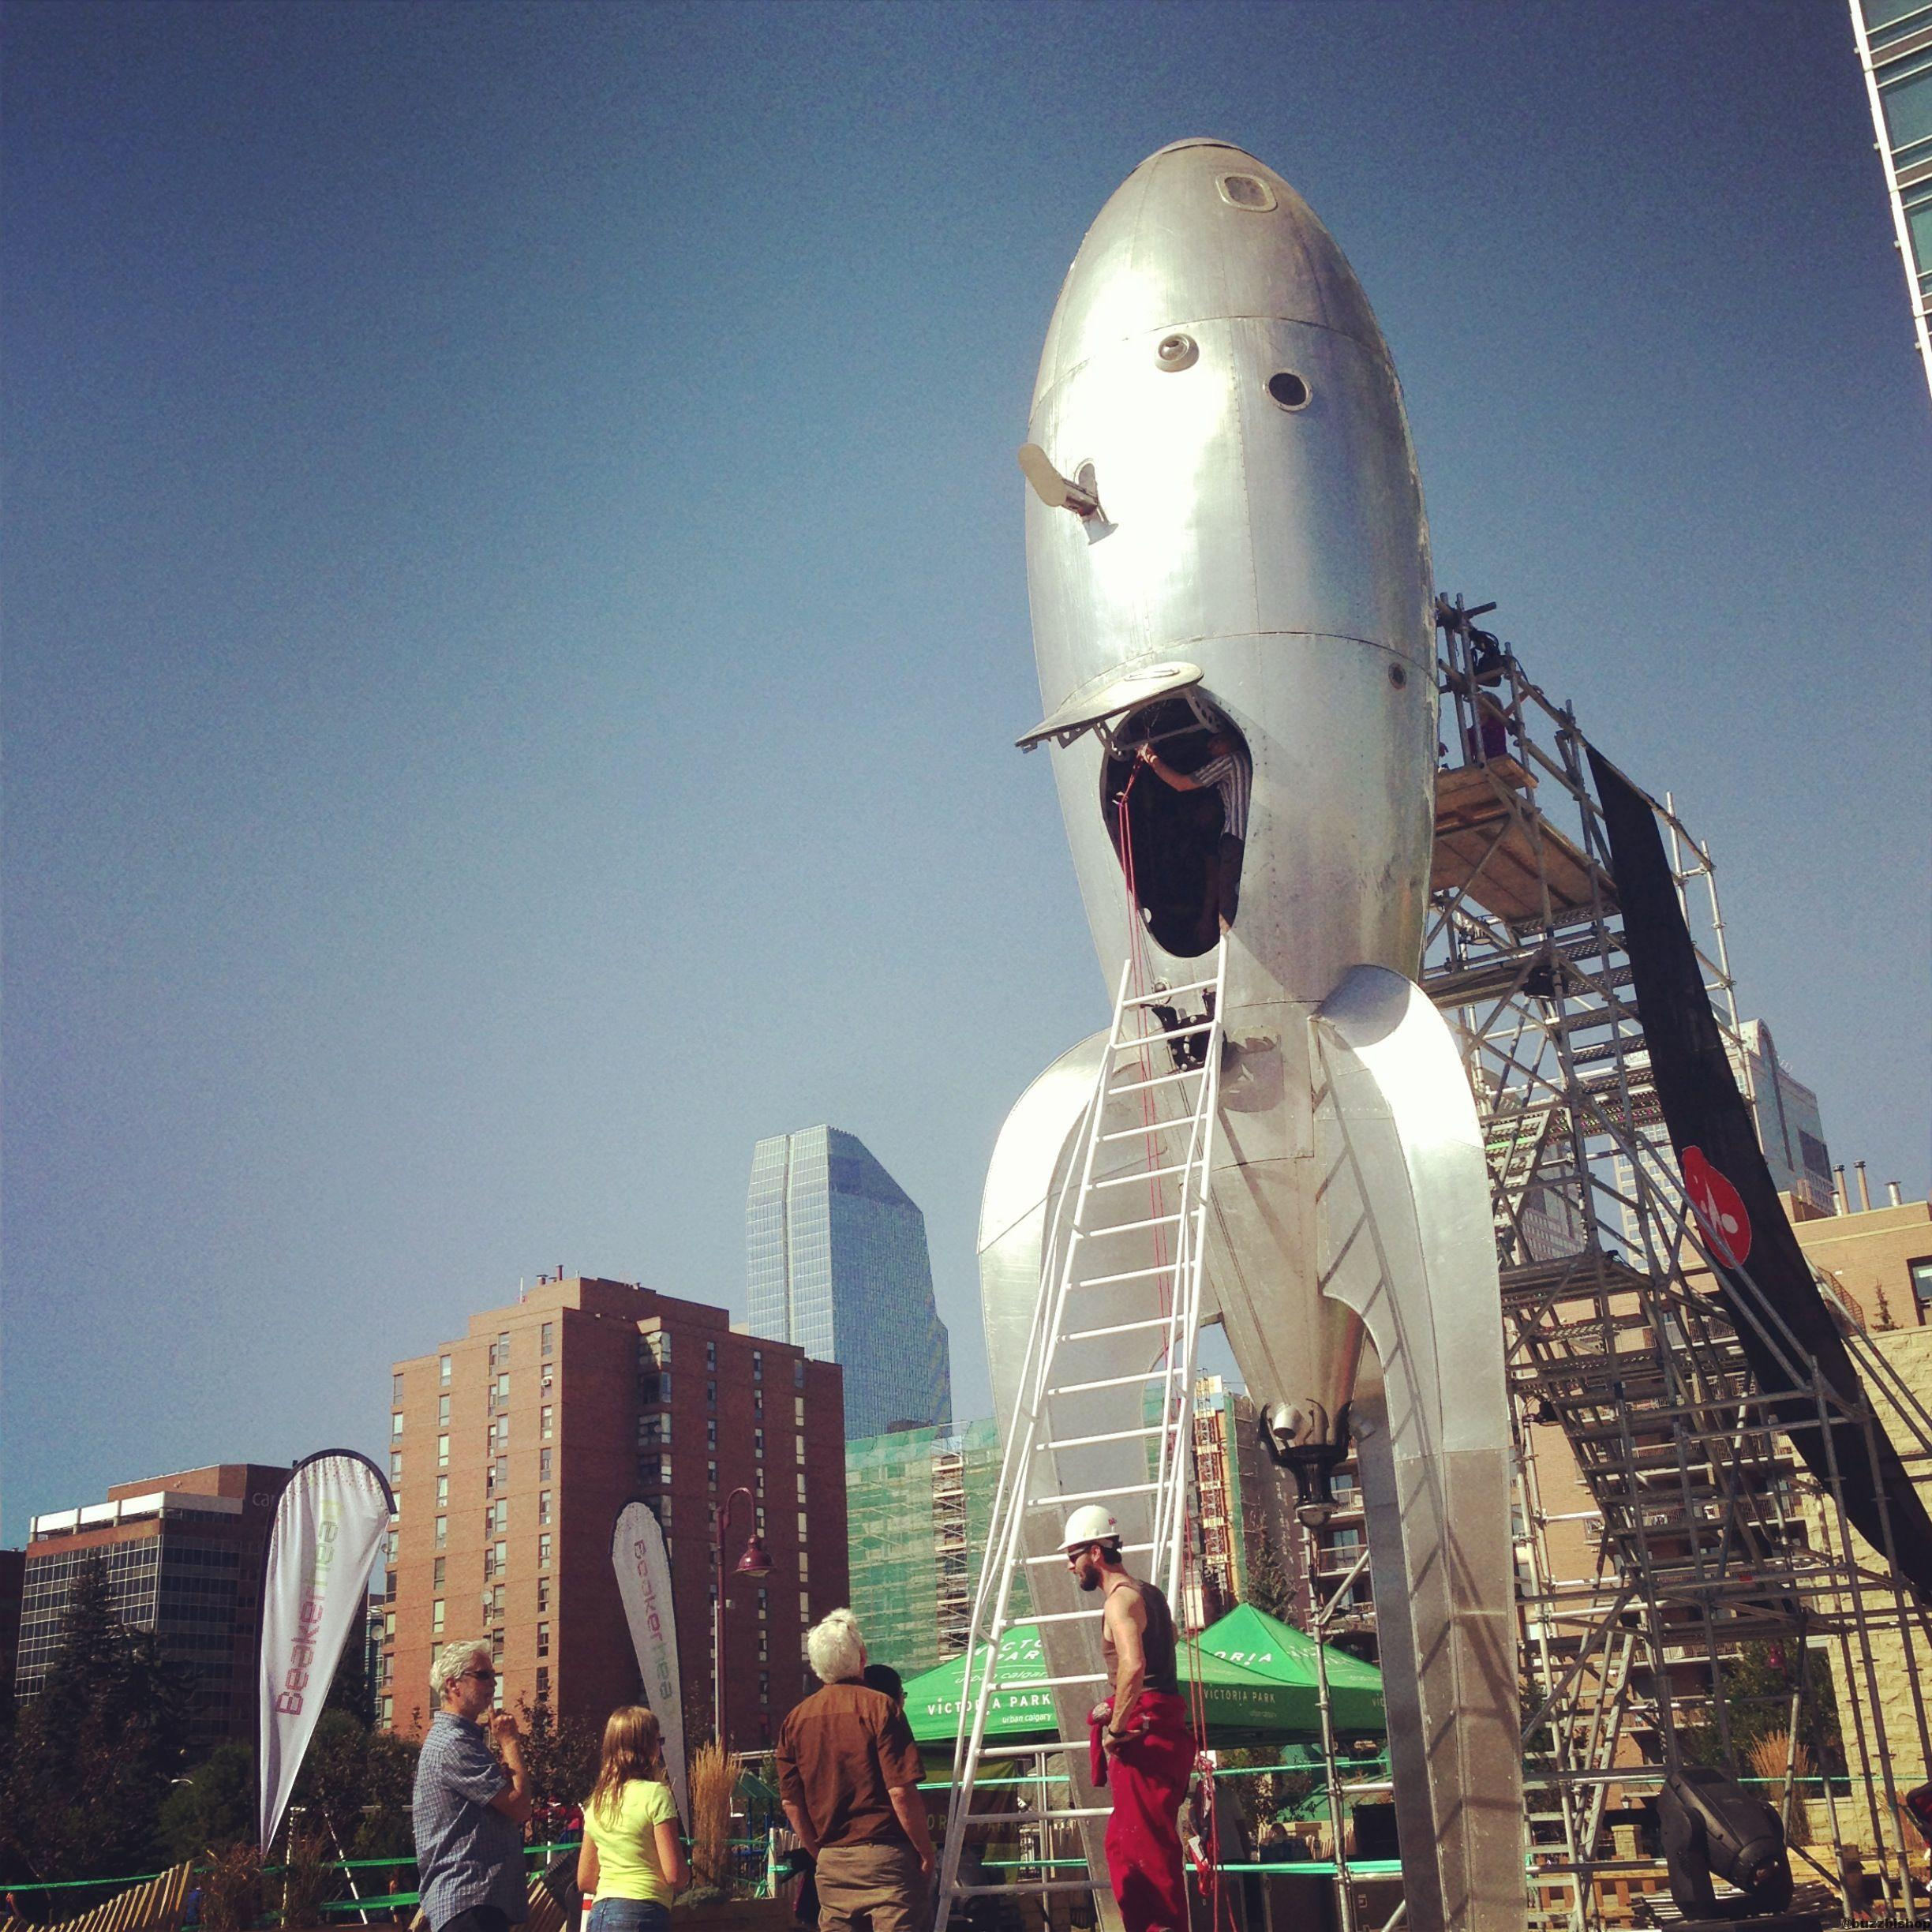 Seen In Calgary 17 Raygun Gothic Rocketship At